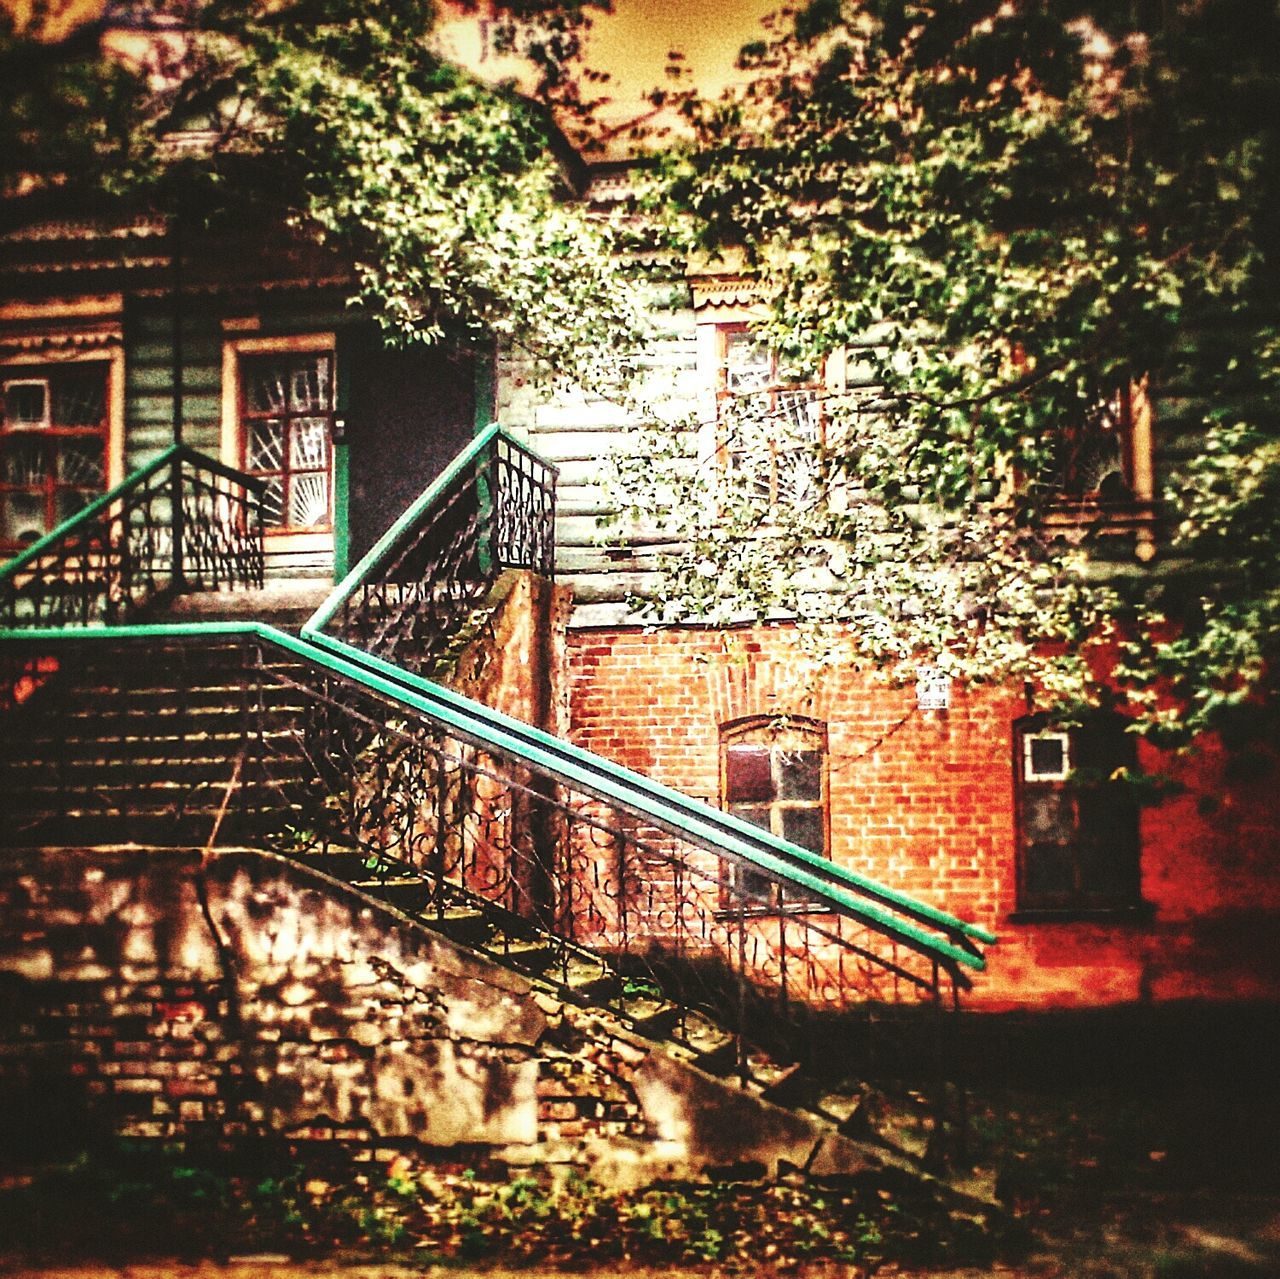 architecture, built structure, steps, building exterior, railing, steps and staircases, staircase, no people, outdoors, tree, day, plant